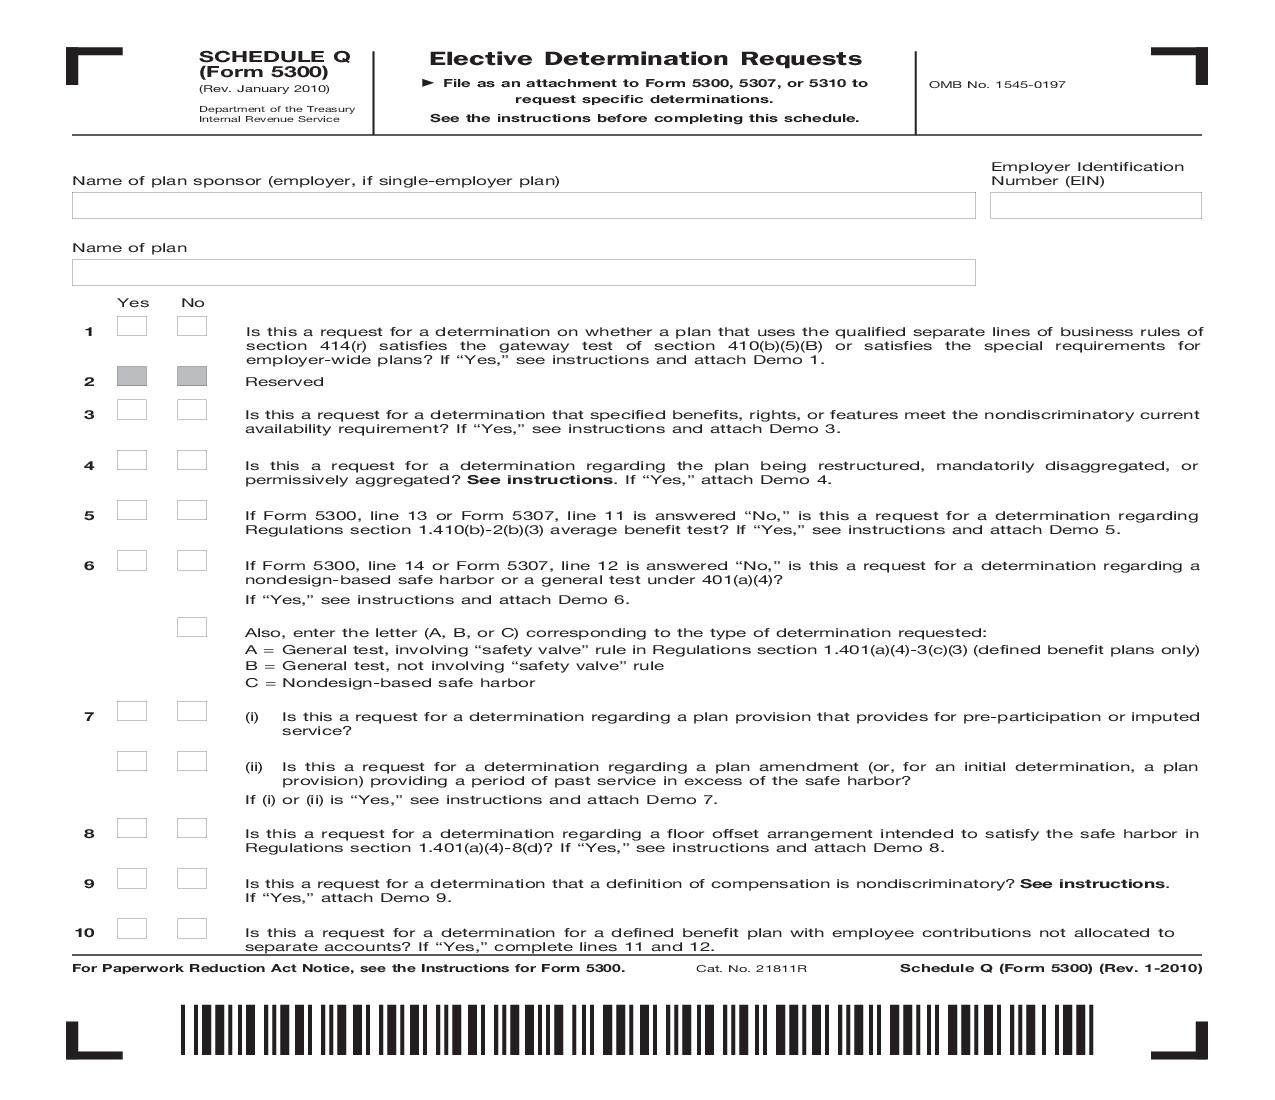 Form 5300 (Schedule Q) Elective Determination Requests {5300} | Pdf Fpdf Doc Docx | Official Federal Forms